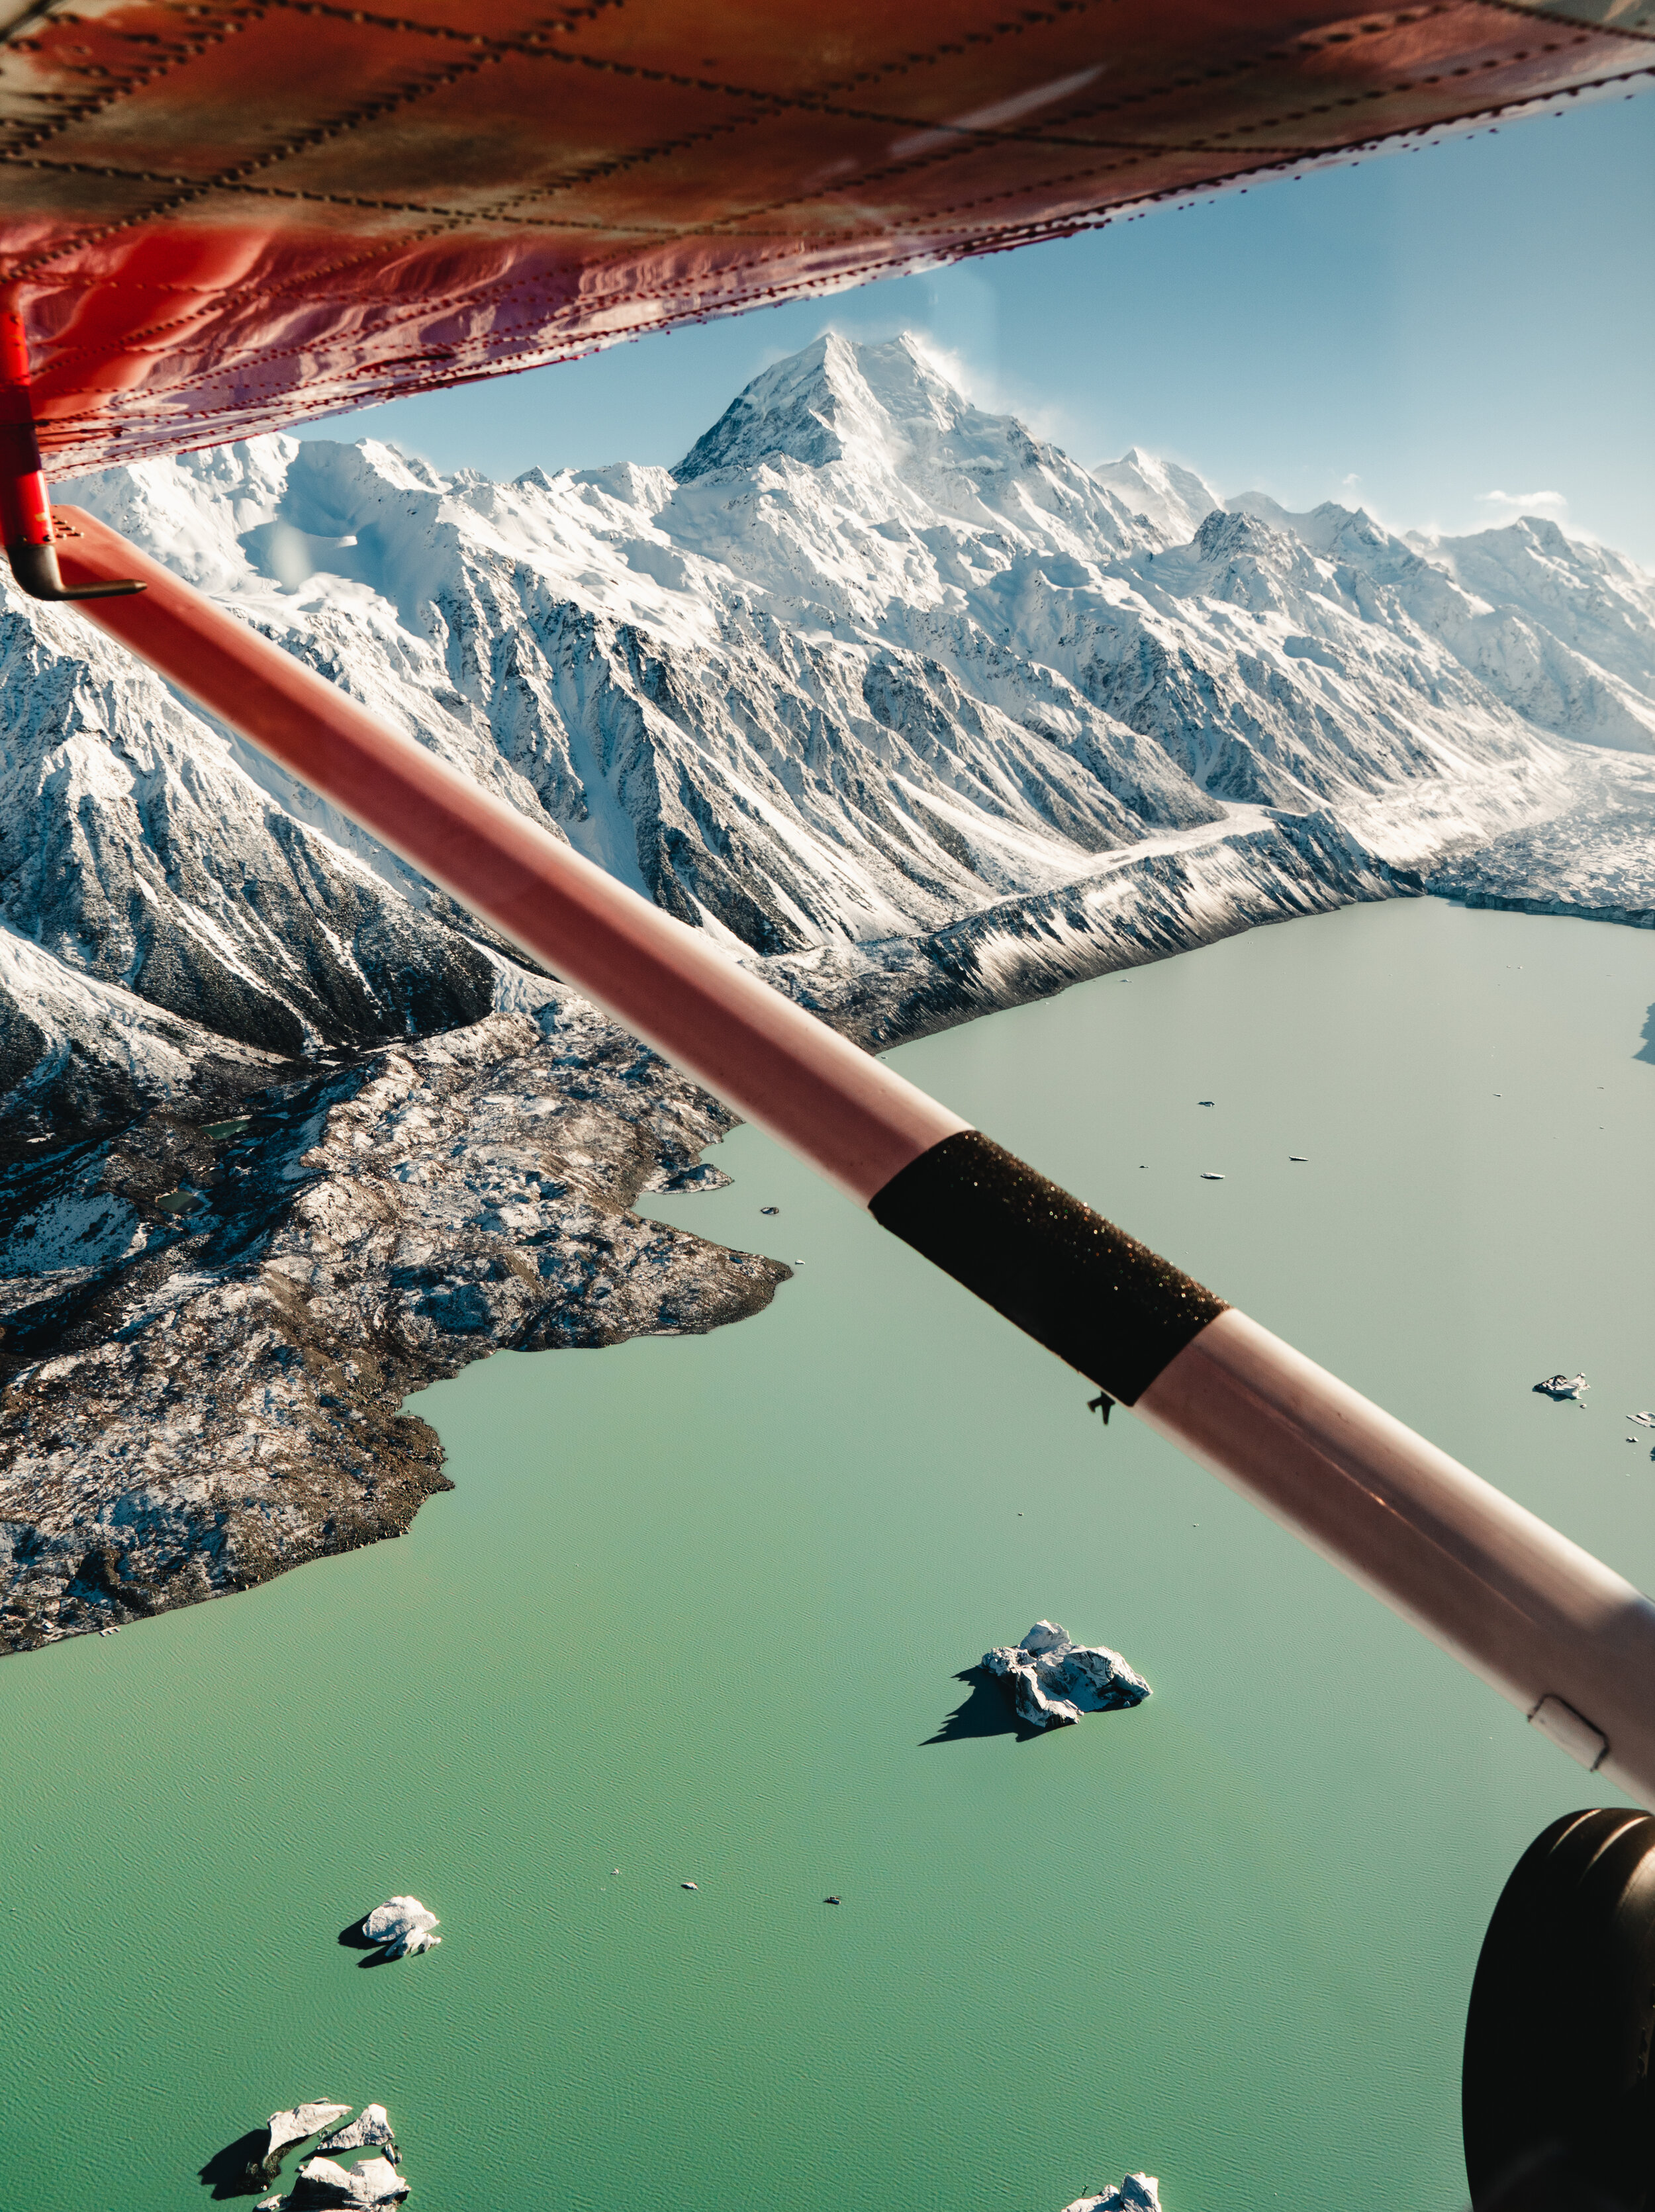 Mabey Ski_New Zealand_Mt Cook Ski Planes and Helicopters_Ski Plane in Flight_2.jpg